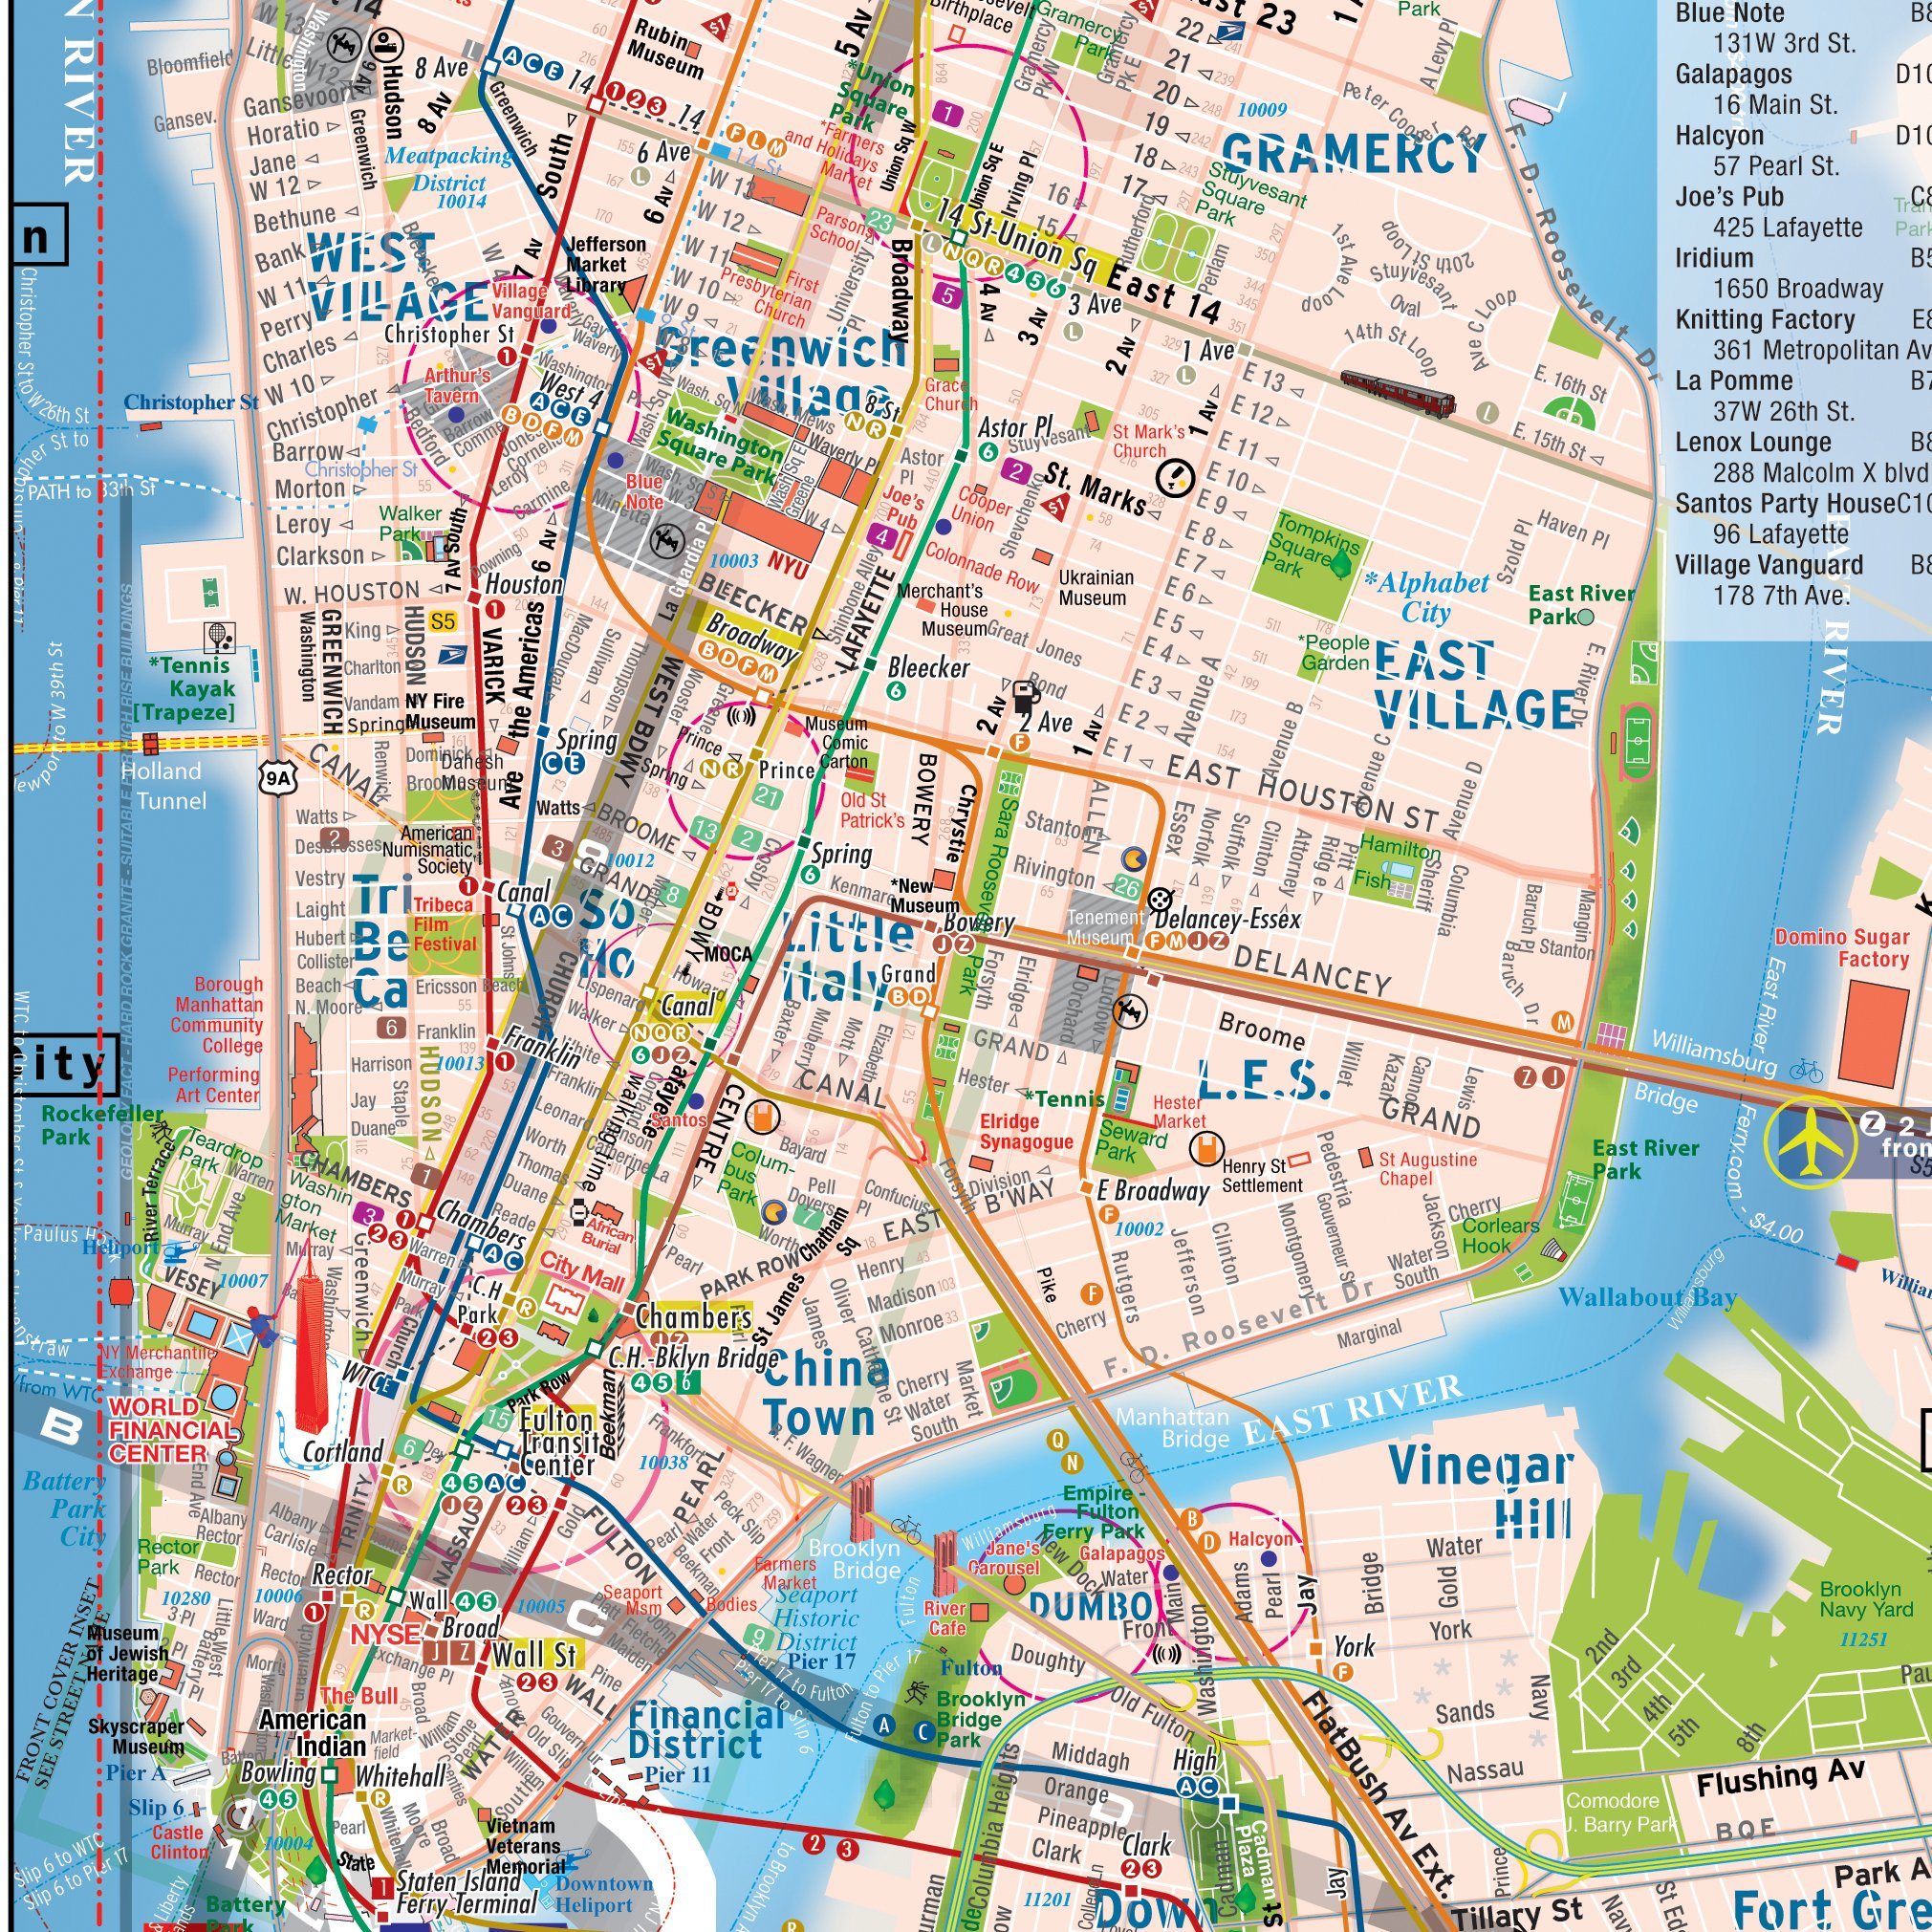 Nyc Subway And Street Map.Terramaps Nyc Manhattan Street And Subway Map Waterproof Pocket Alberto Michieli Alberto Michieli Alberto Michieli 9780983879220 Amazon Com Books